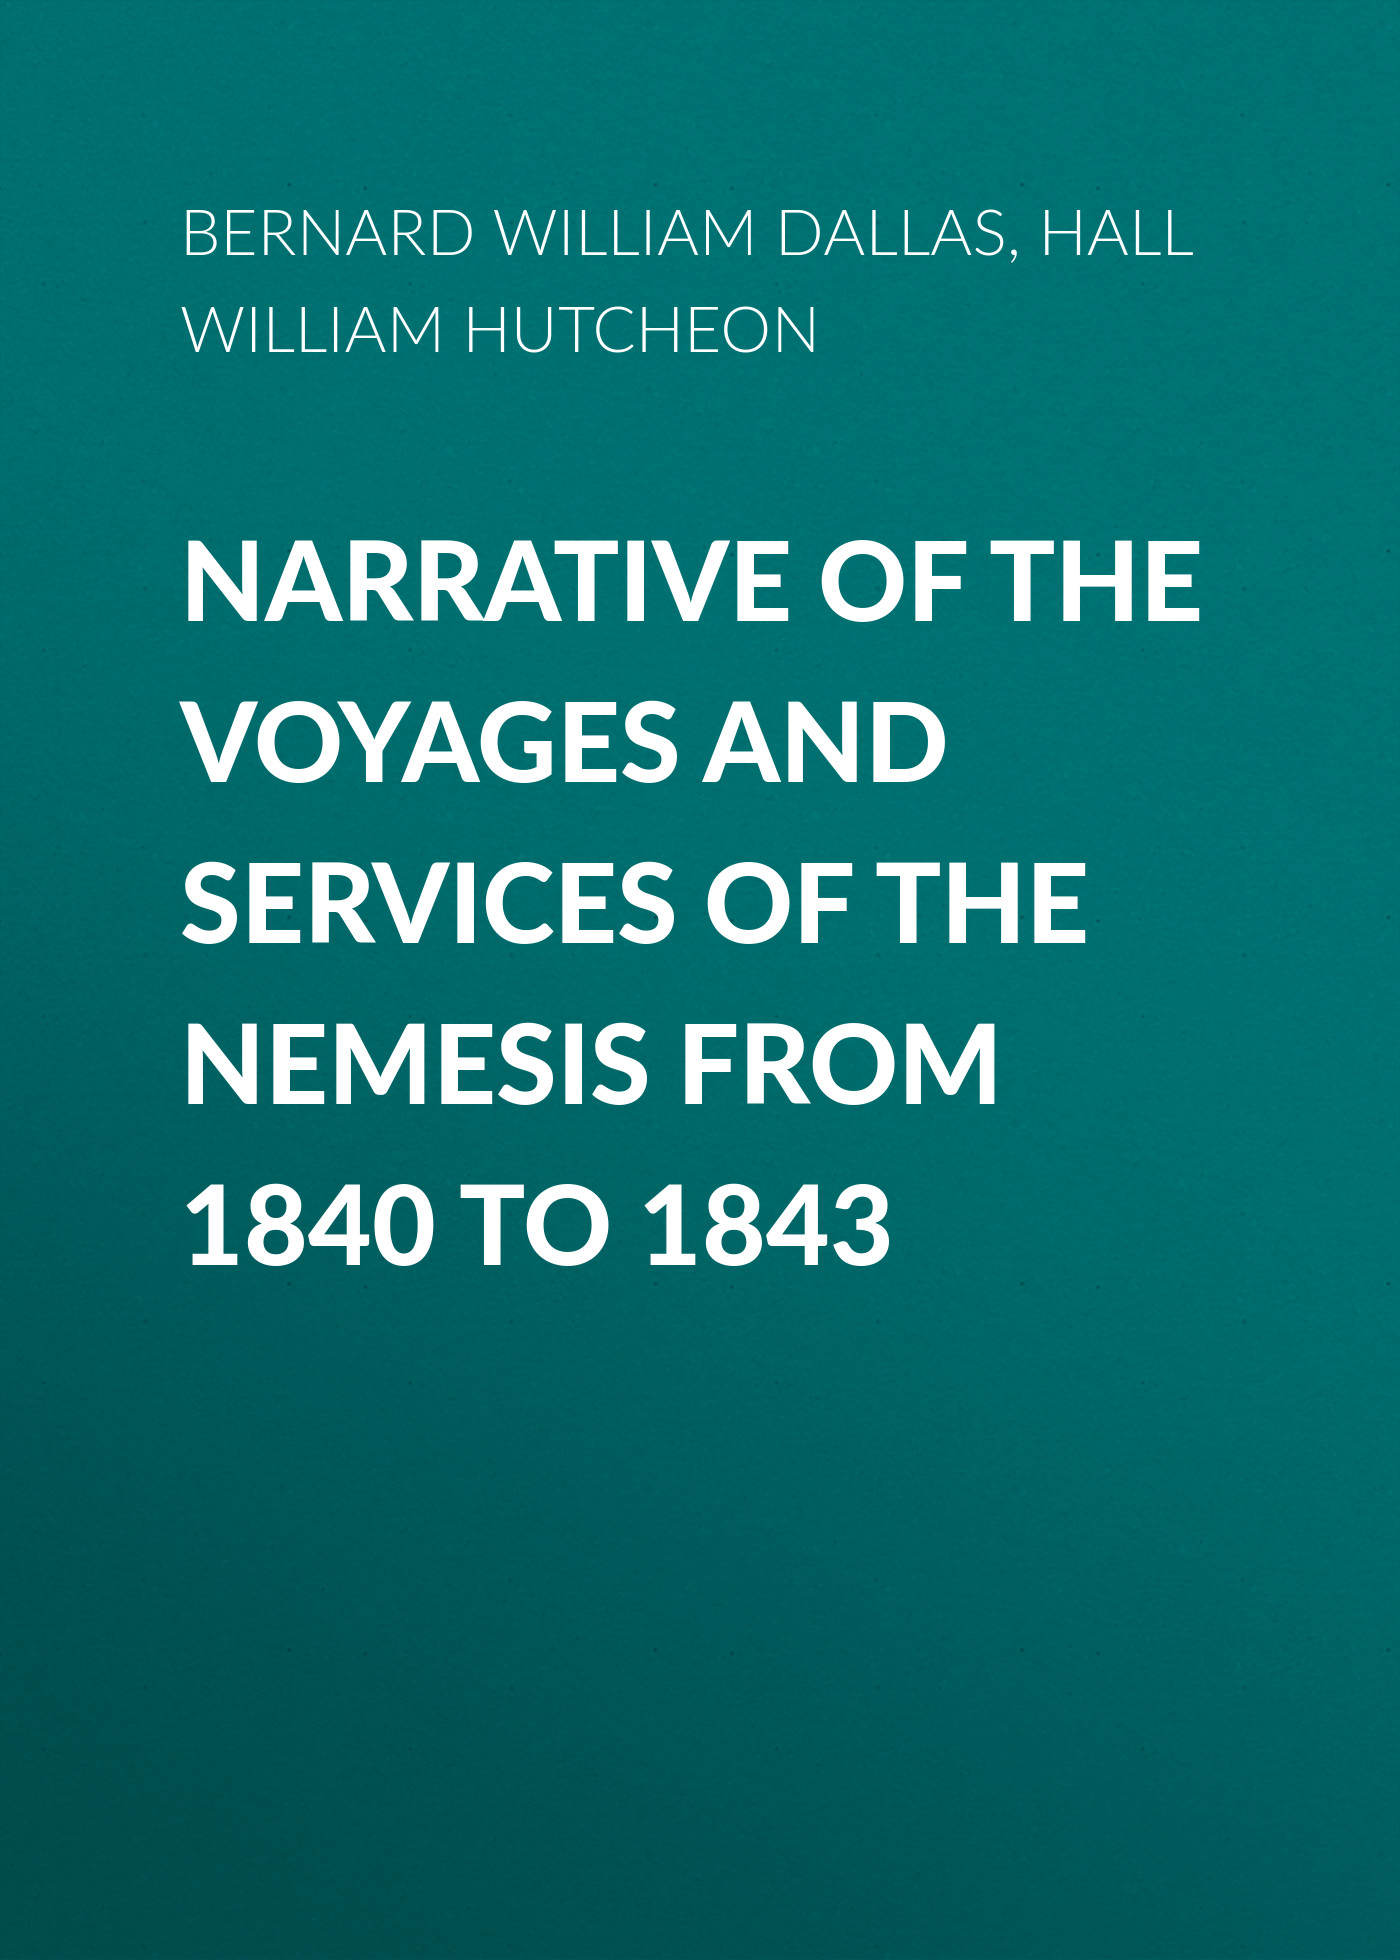 Bernard William Dallas Narrative of the Voyages and Services of the Nemesis from 1840 to 1843 george mifflin dallas life and writings of alexander james dallas